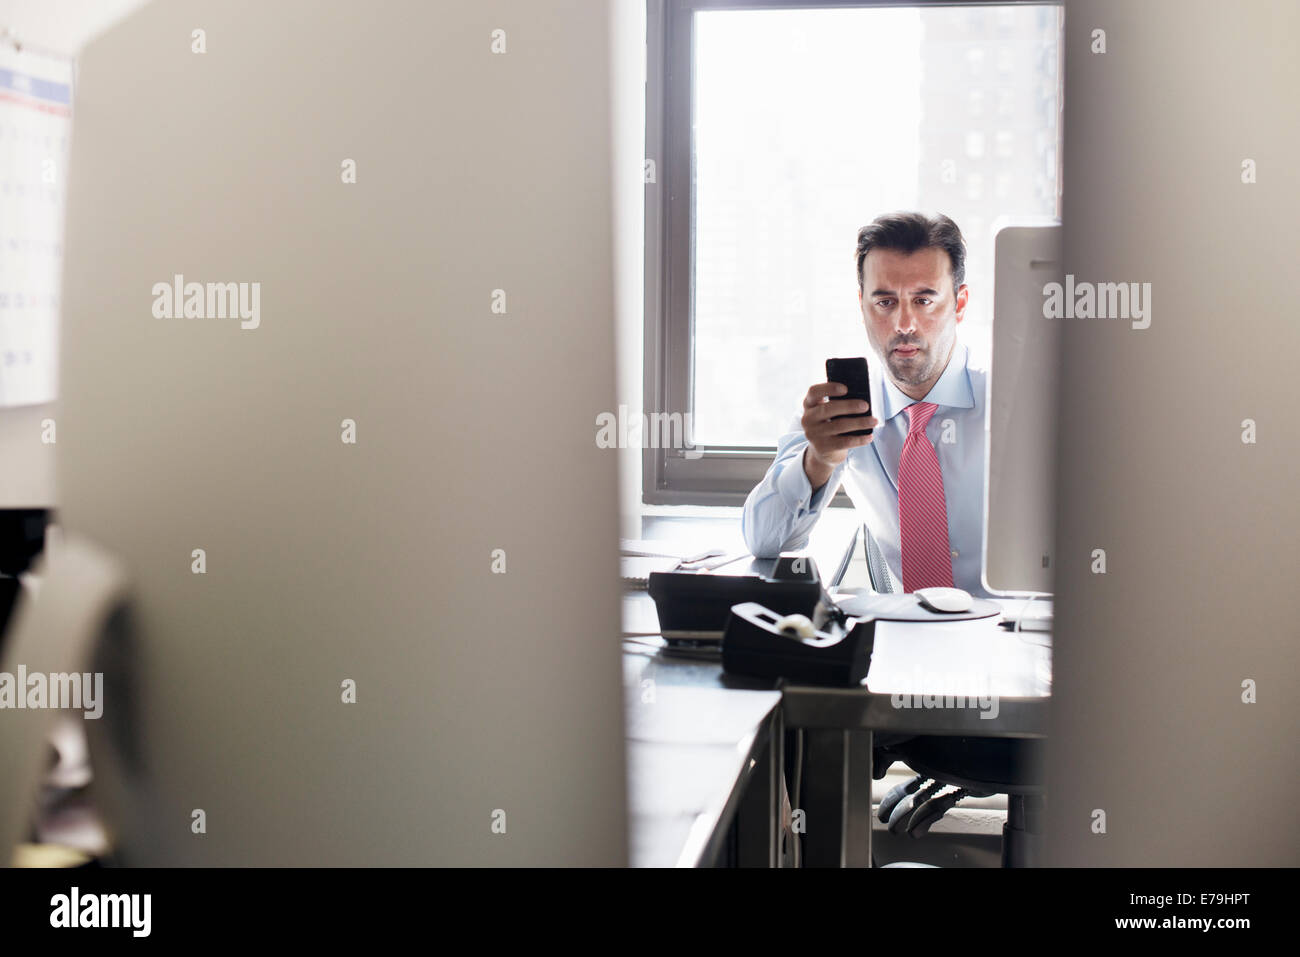 A man checking his smart phone, seated at his office desk. - Stock Image